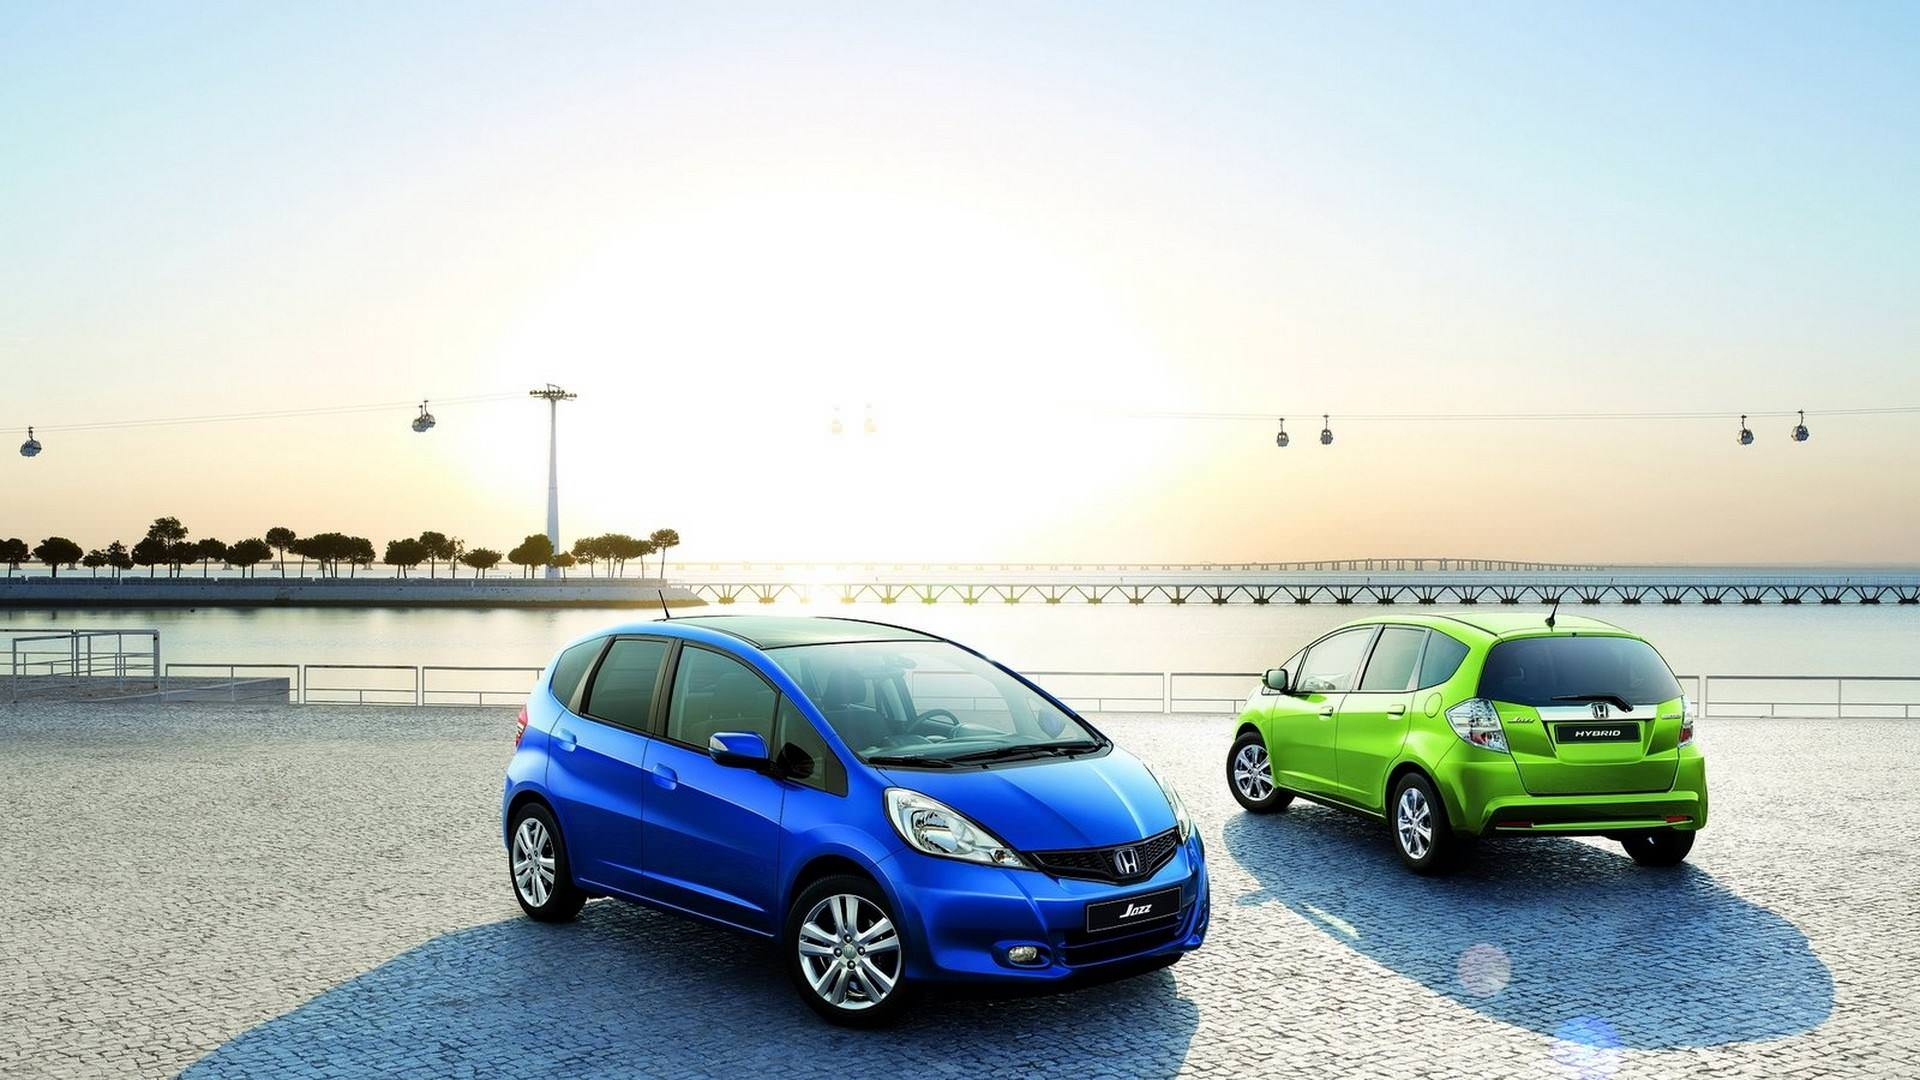 Honda Jazz Wallpapers HD Image